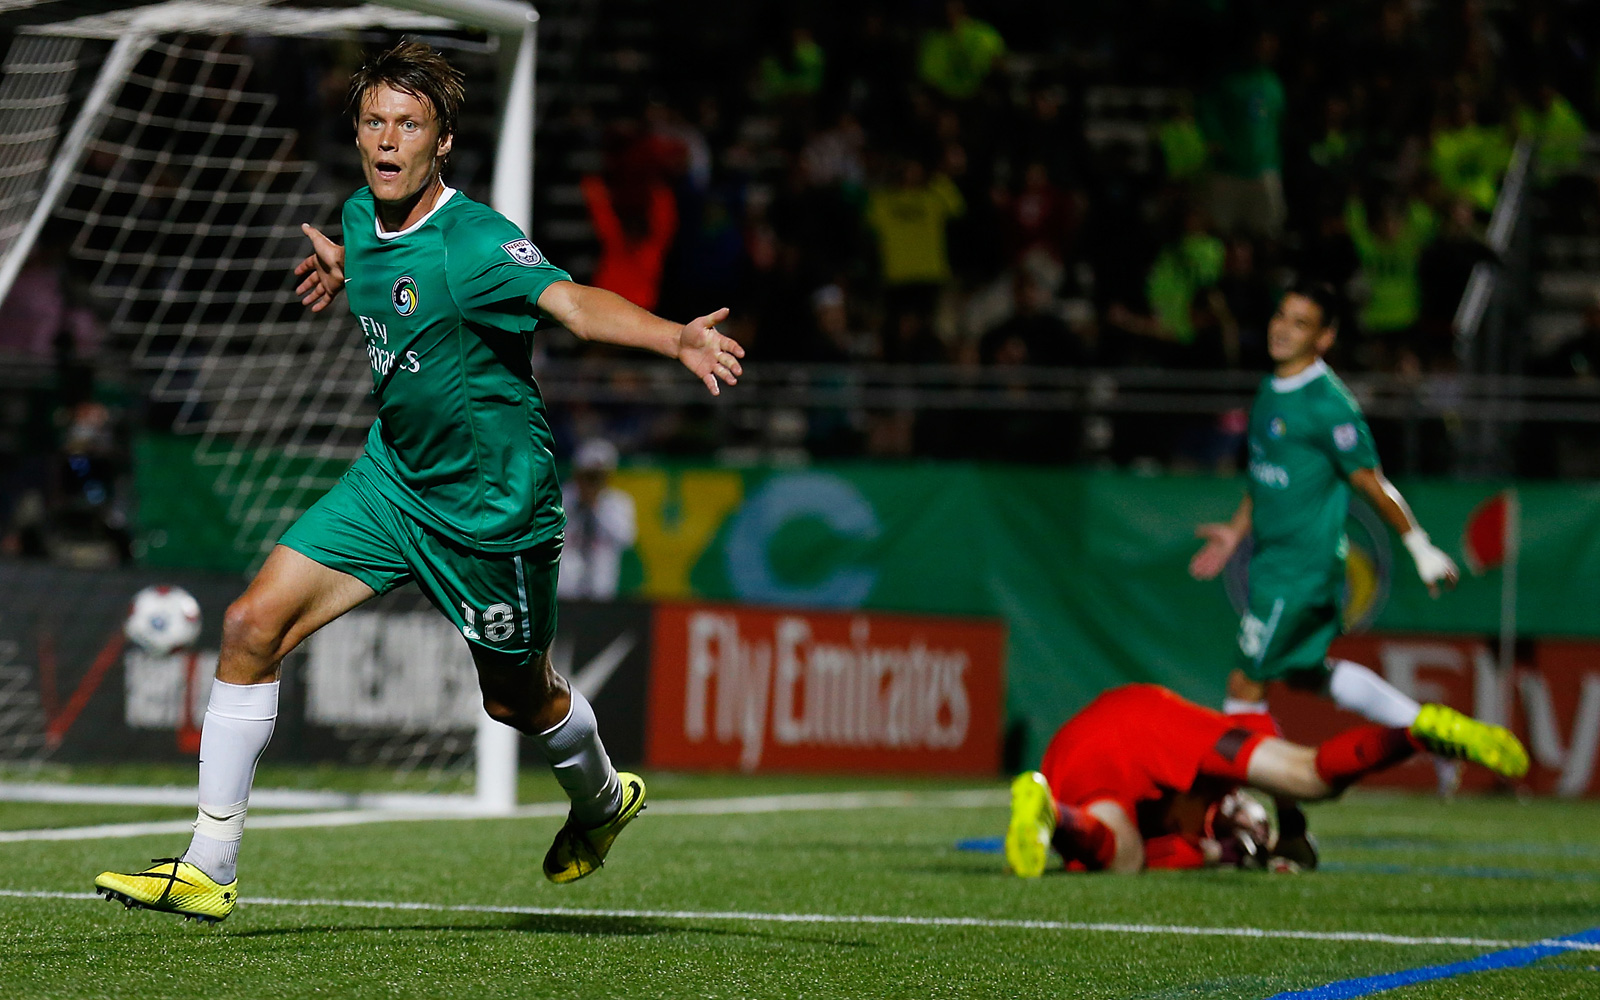 Mads Stokkelien celebrates one of his two goals in the New York Cosmos' 3-0 win over the New York Red Bulls in the 2014 U.S. Open Cup.